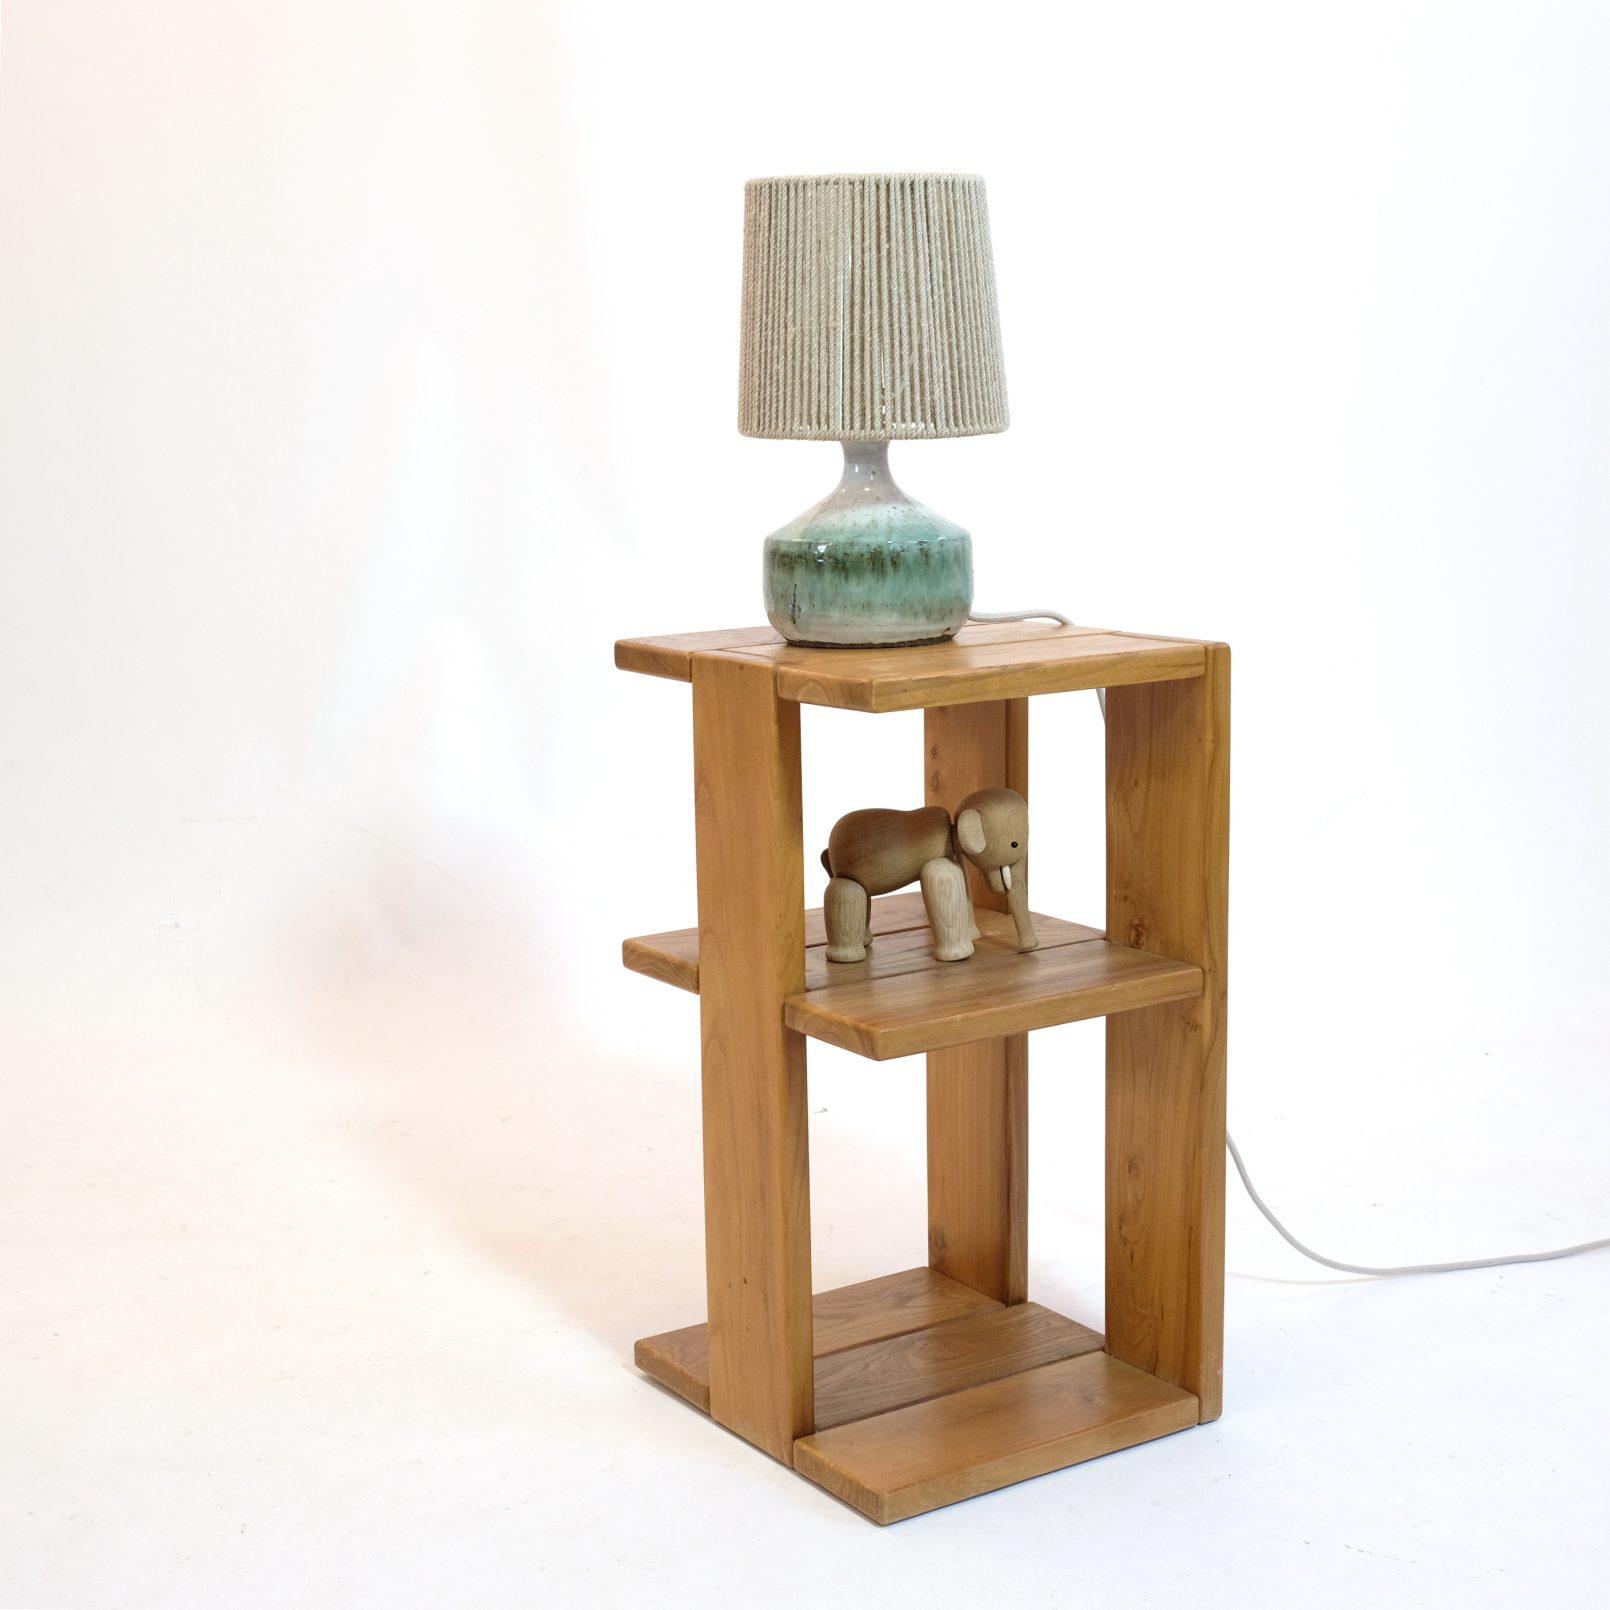 Elm side table produced by Regain in the seventies.